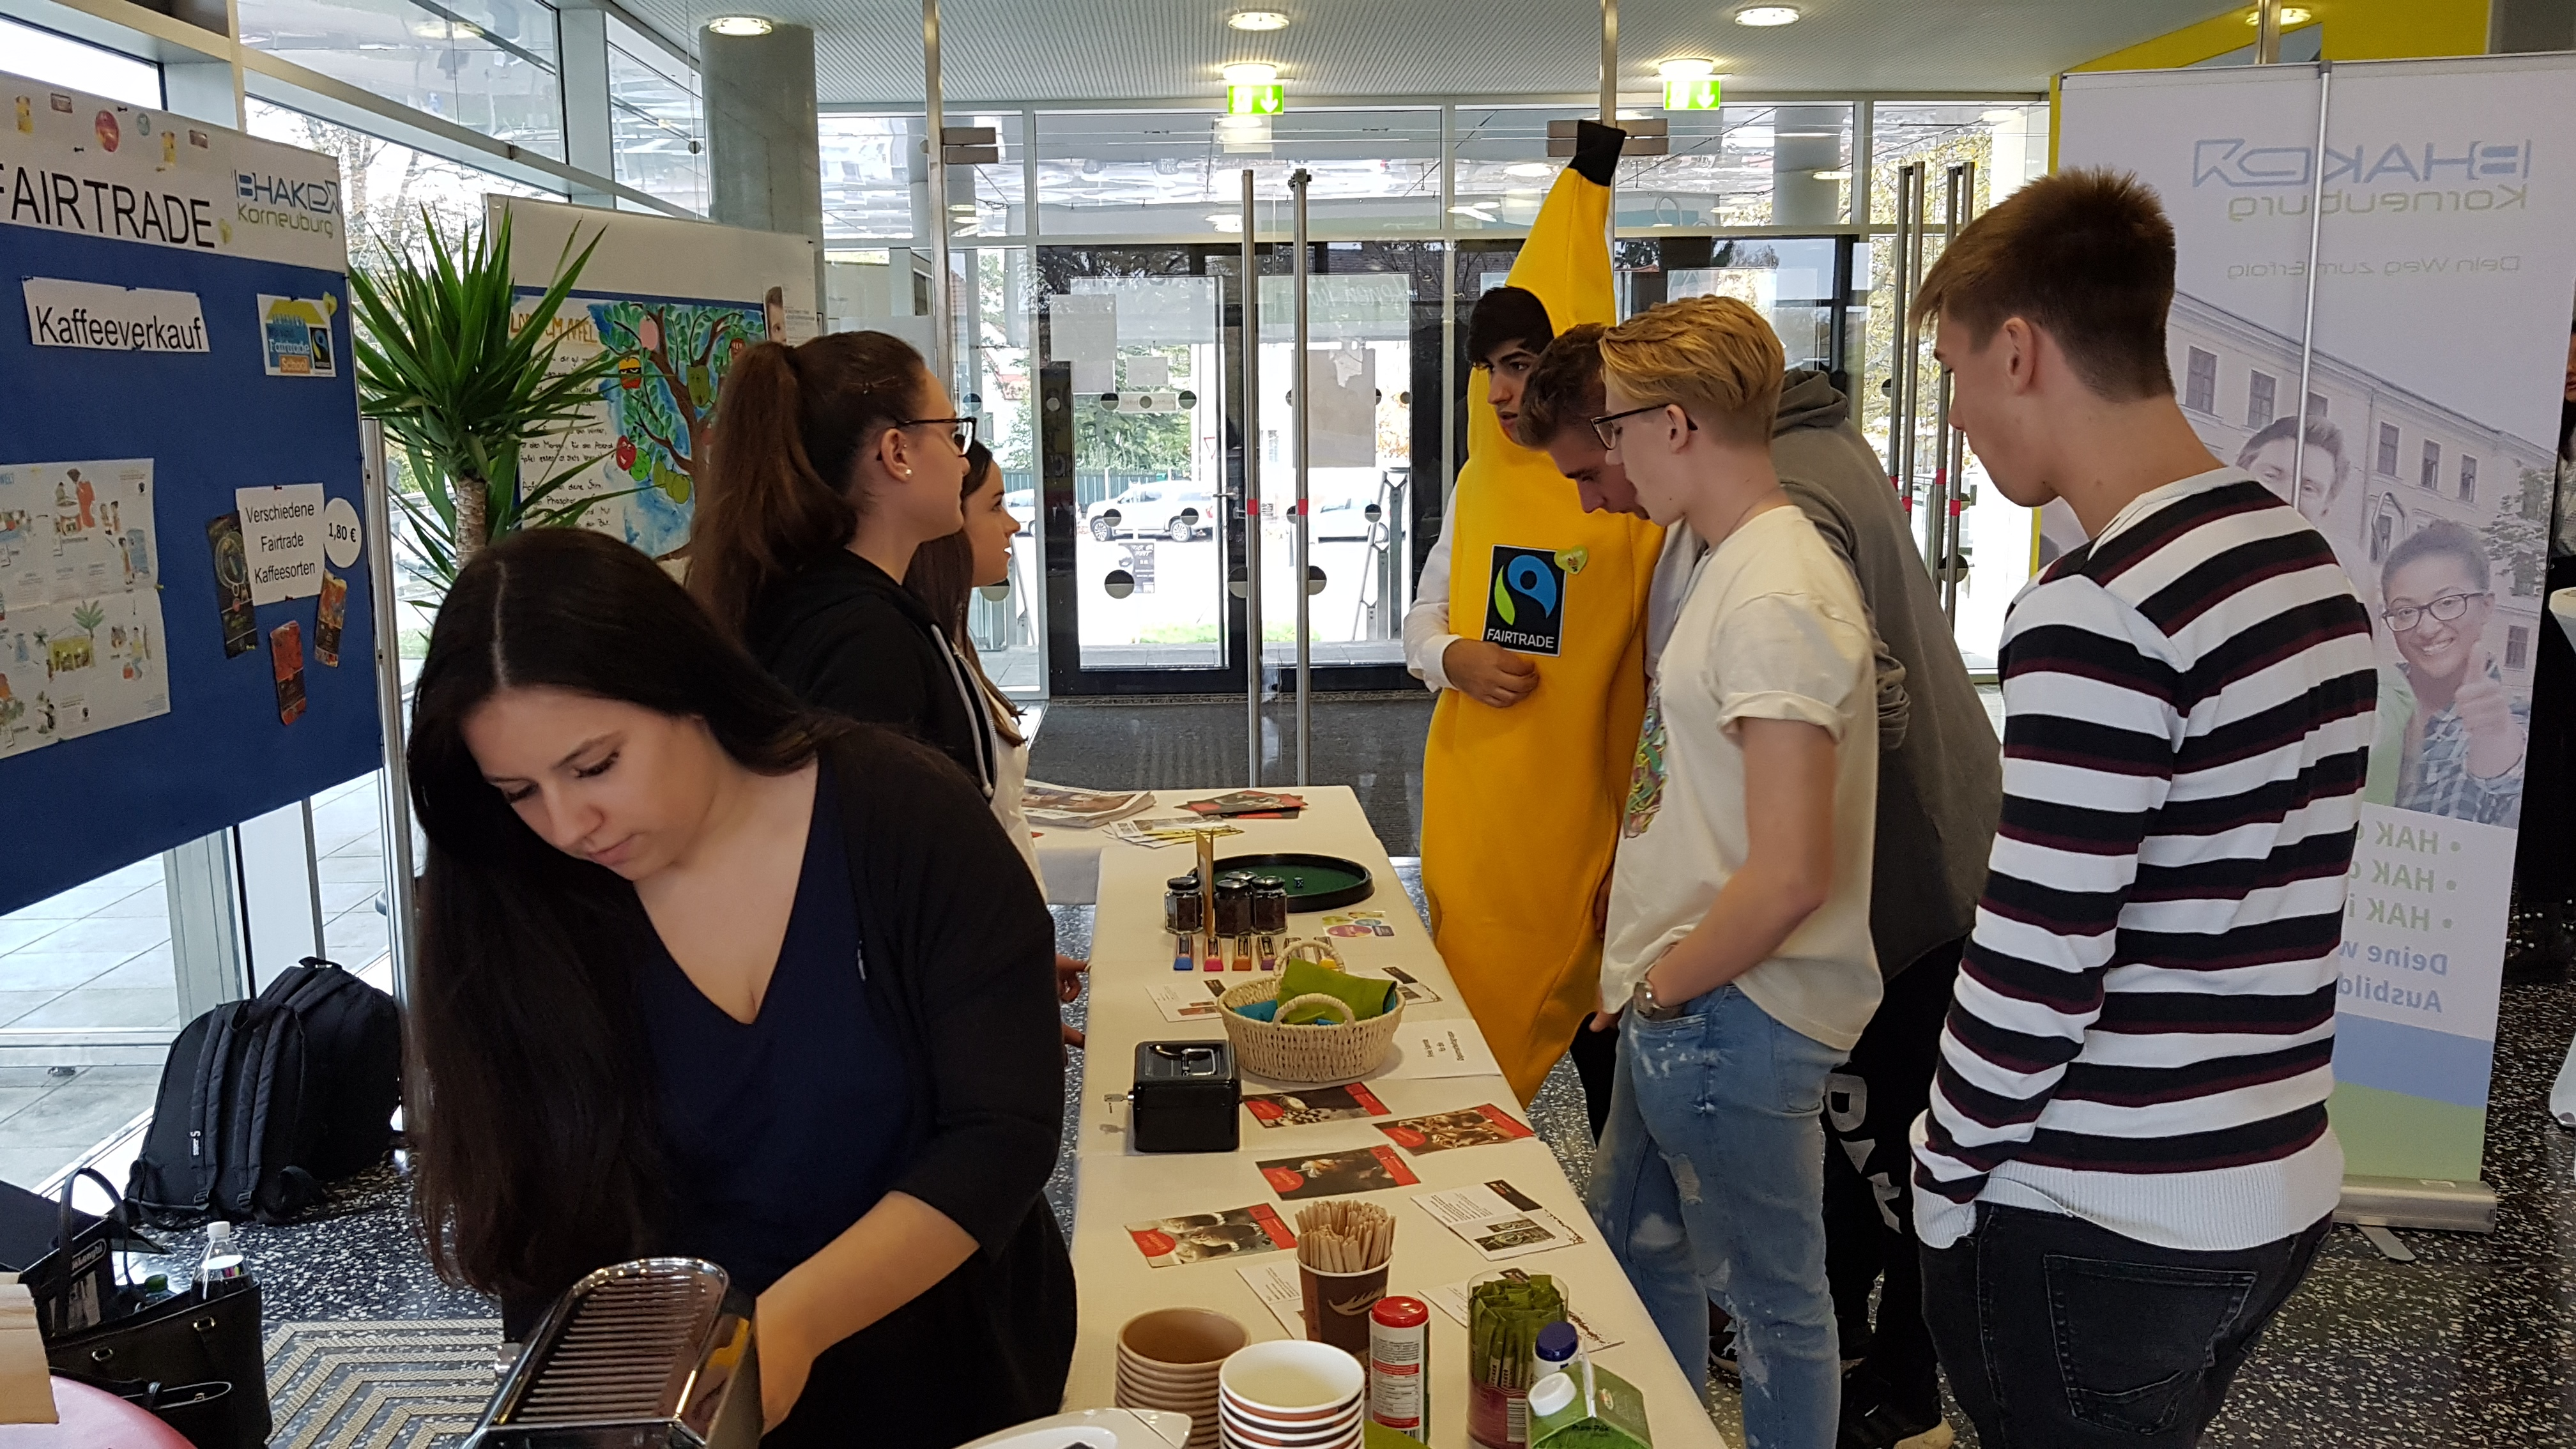 FAIRTRADE@School Kaffeestand